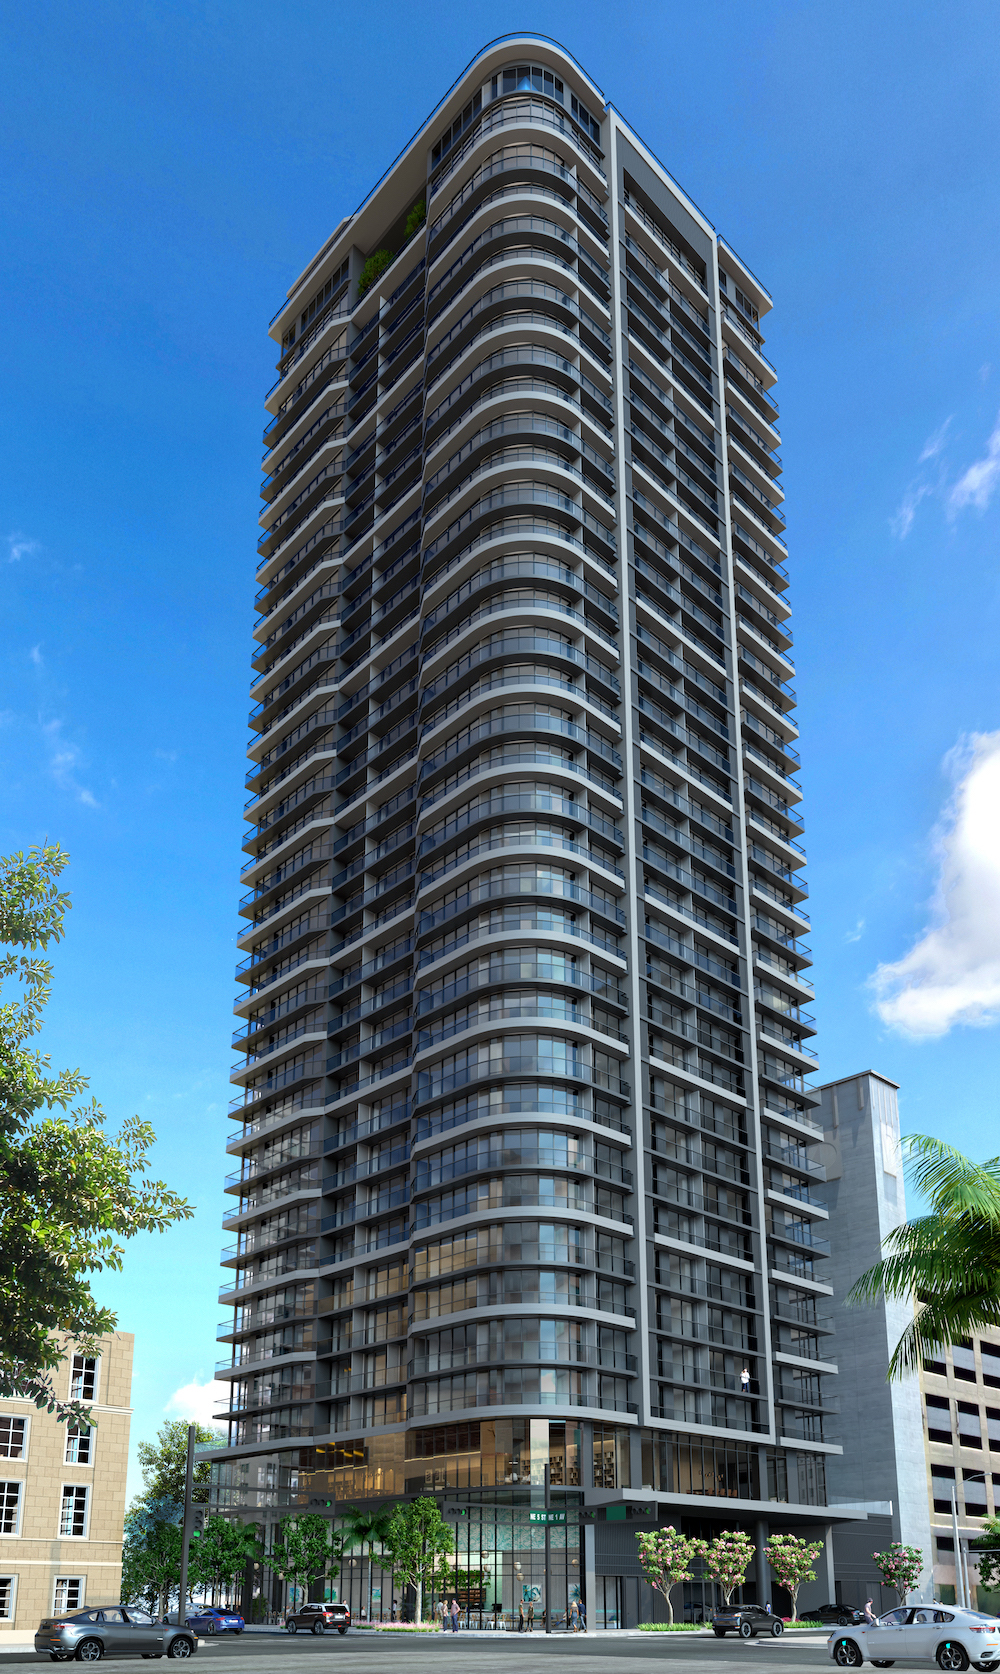 skyview image of 501 First Residences